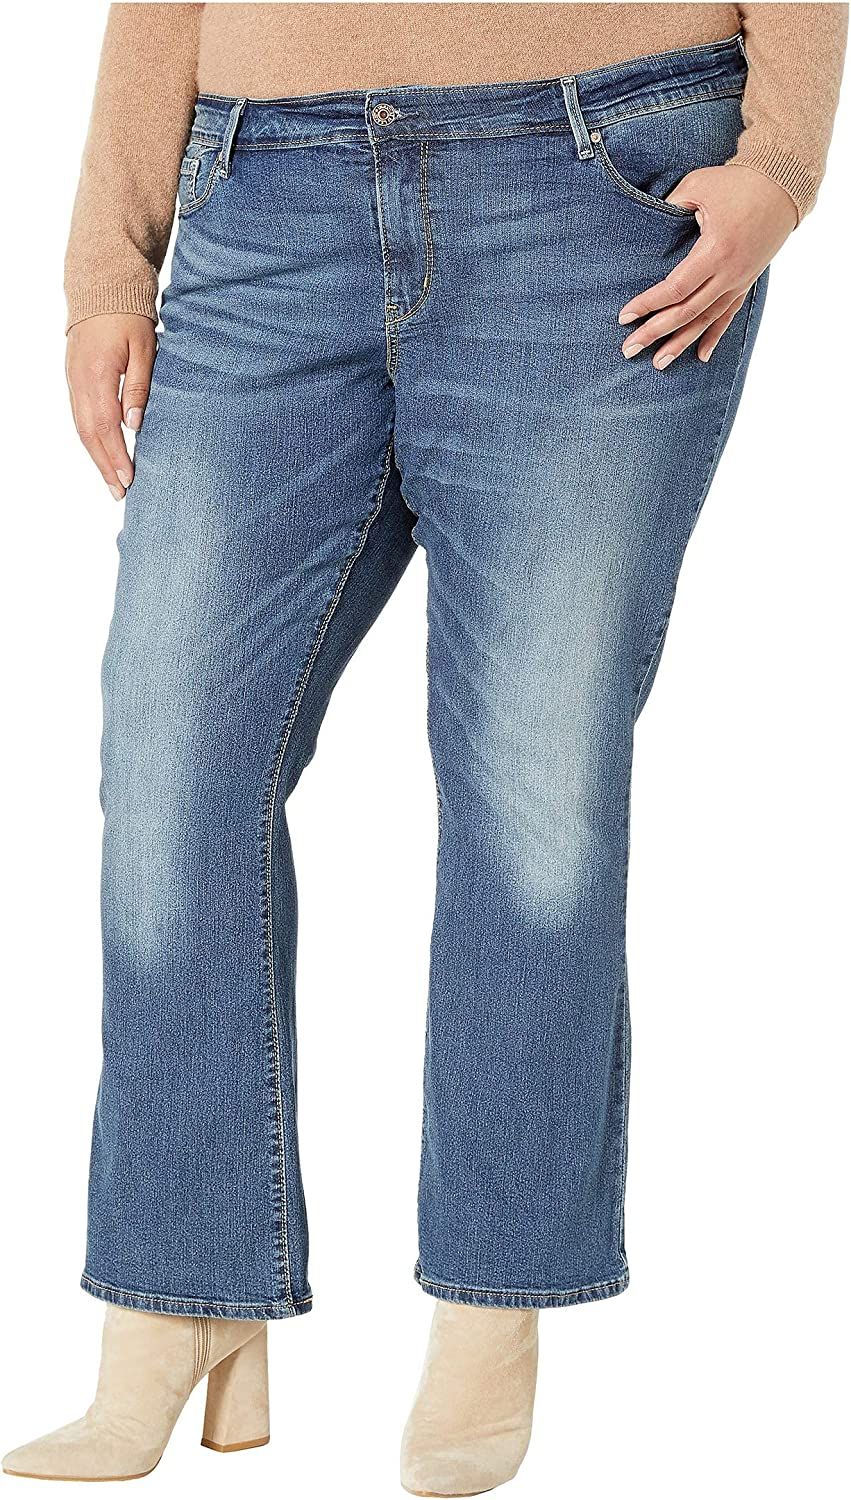 Signature by Levi Strauss Max 64% OFF Weekly update Co. Women's Label Modern Bootcu Gold